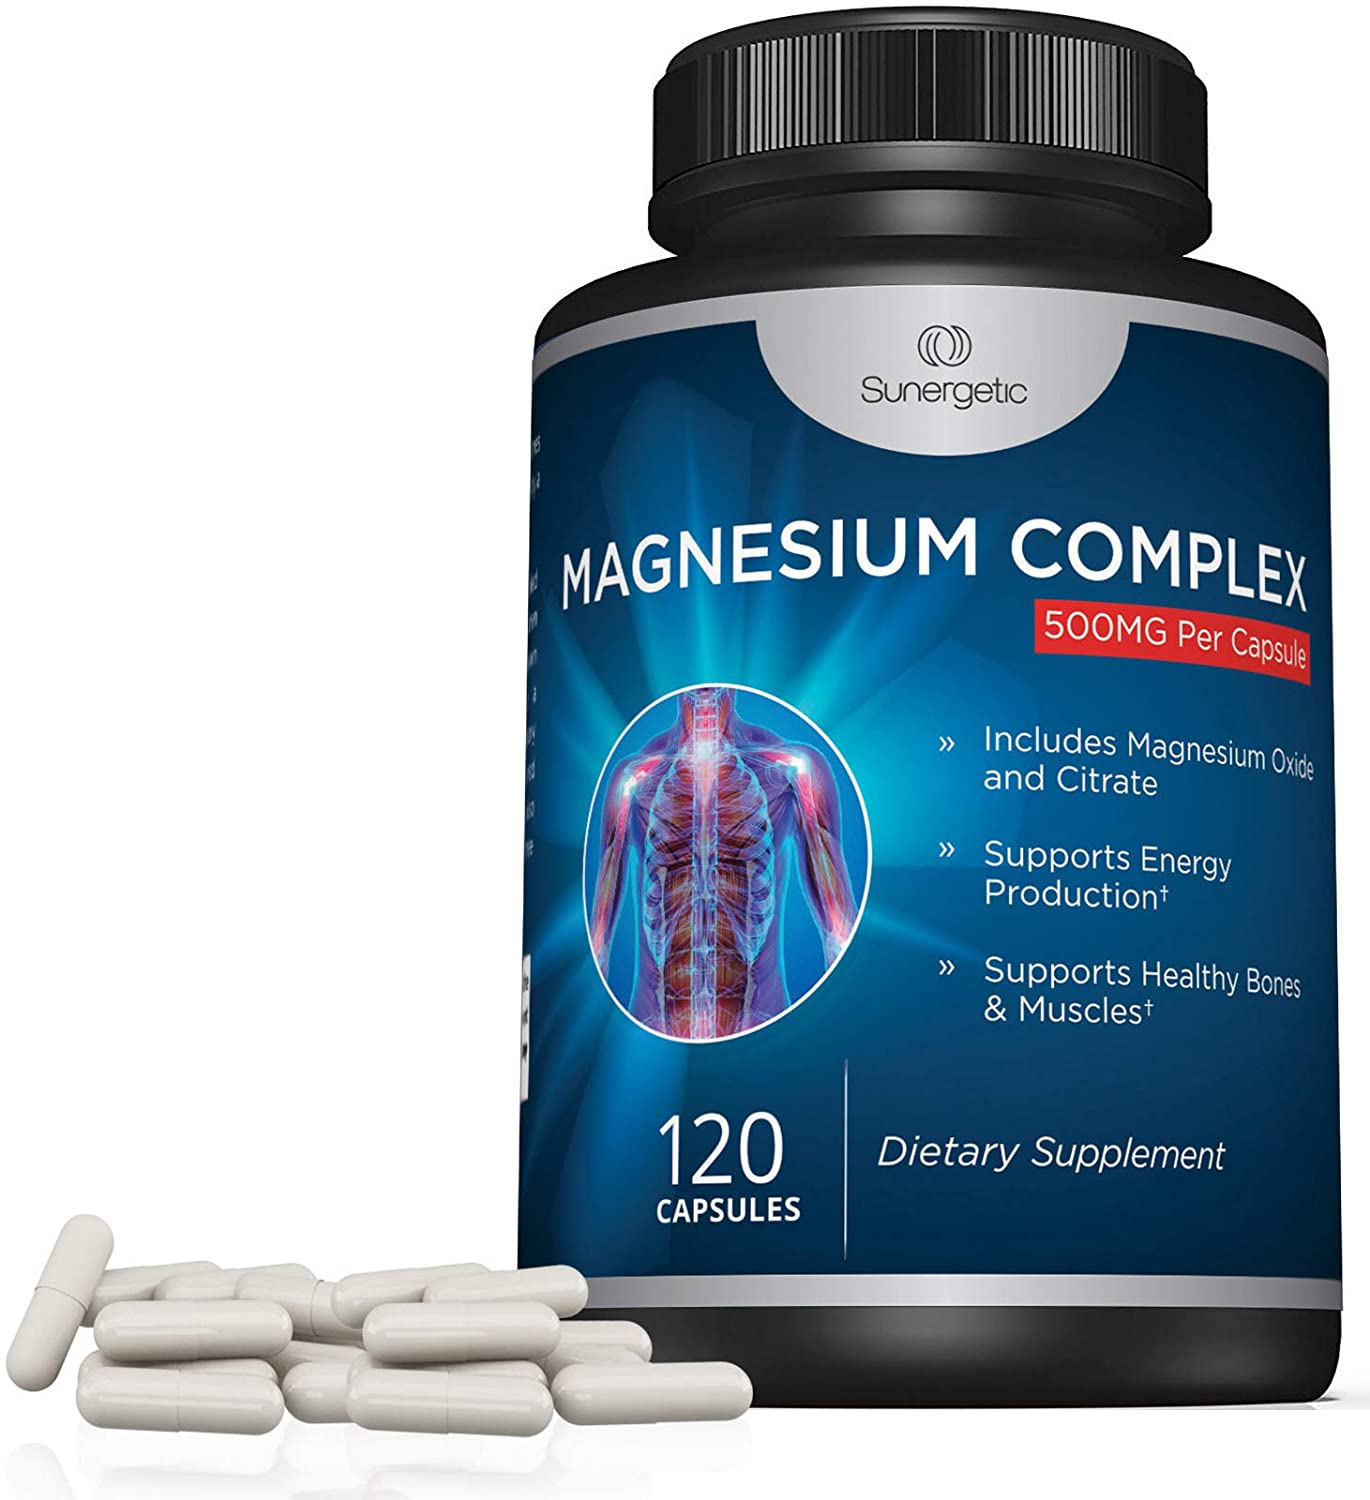 Premium Magnesium Citrate Capsules – Powerful 500mg Magnesium Oxide & Citrate Supplement – Helps Support Healthy Bones, Muscles, Teeth, Energy & Relaxation – 120 Vegetable Capsules: Health & Personal Care